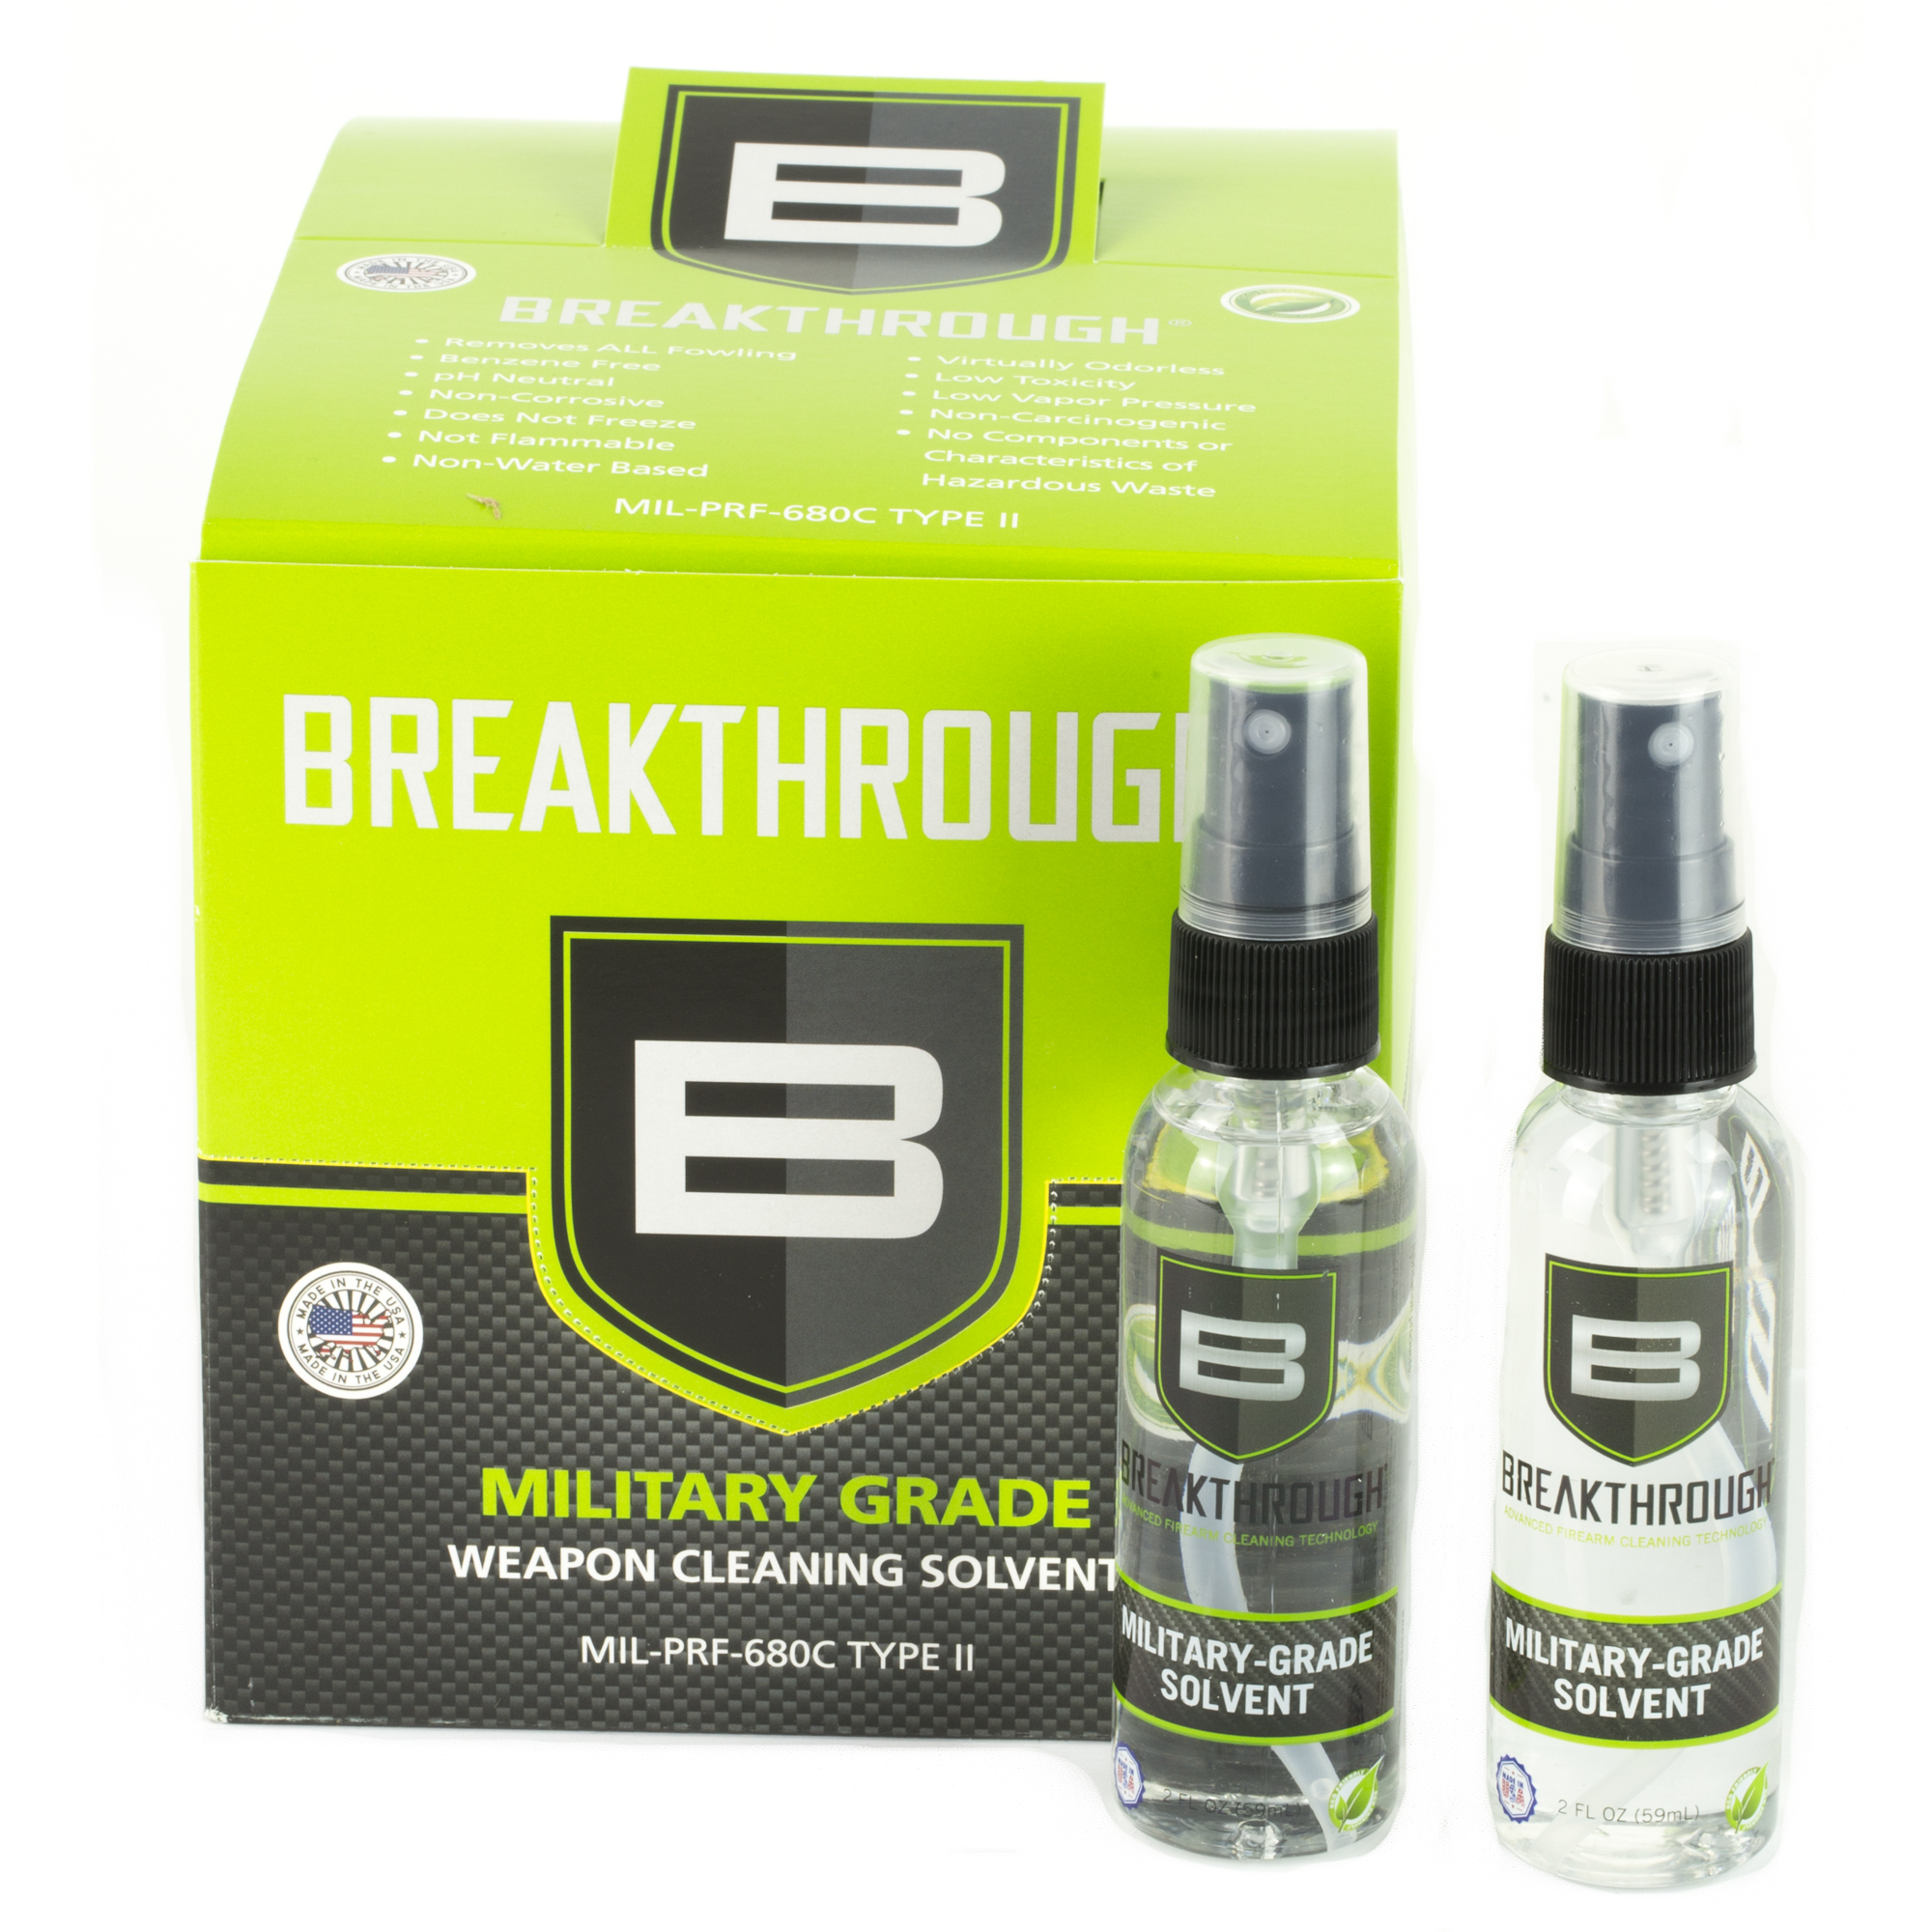 """Breakthrough Clean is ushering in a new era of technology where cleaning your firearms is now faster and safer than ever. Their cleaning products eliminate more contaminants than most leading gun cleaners"""" providing optimal firearm performance"""" safety"""" and usability."""